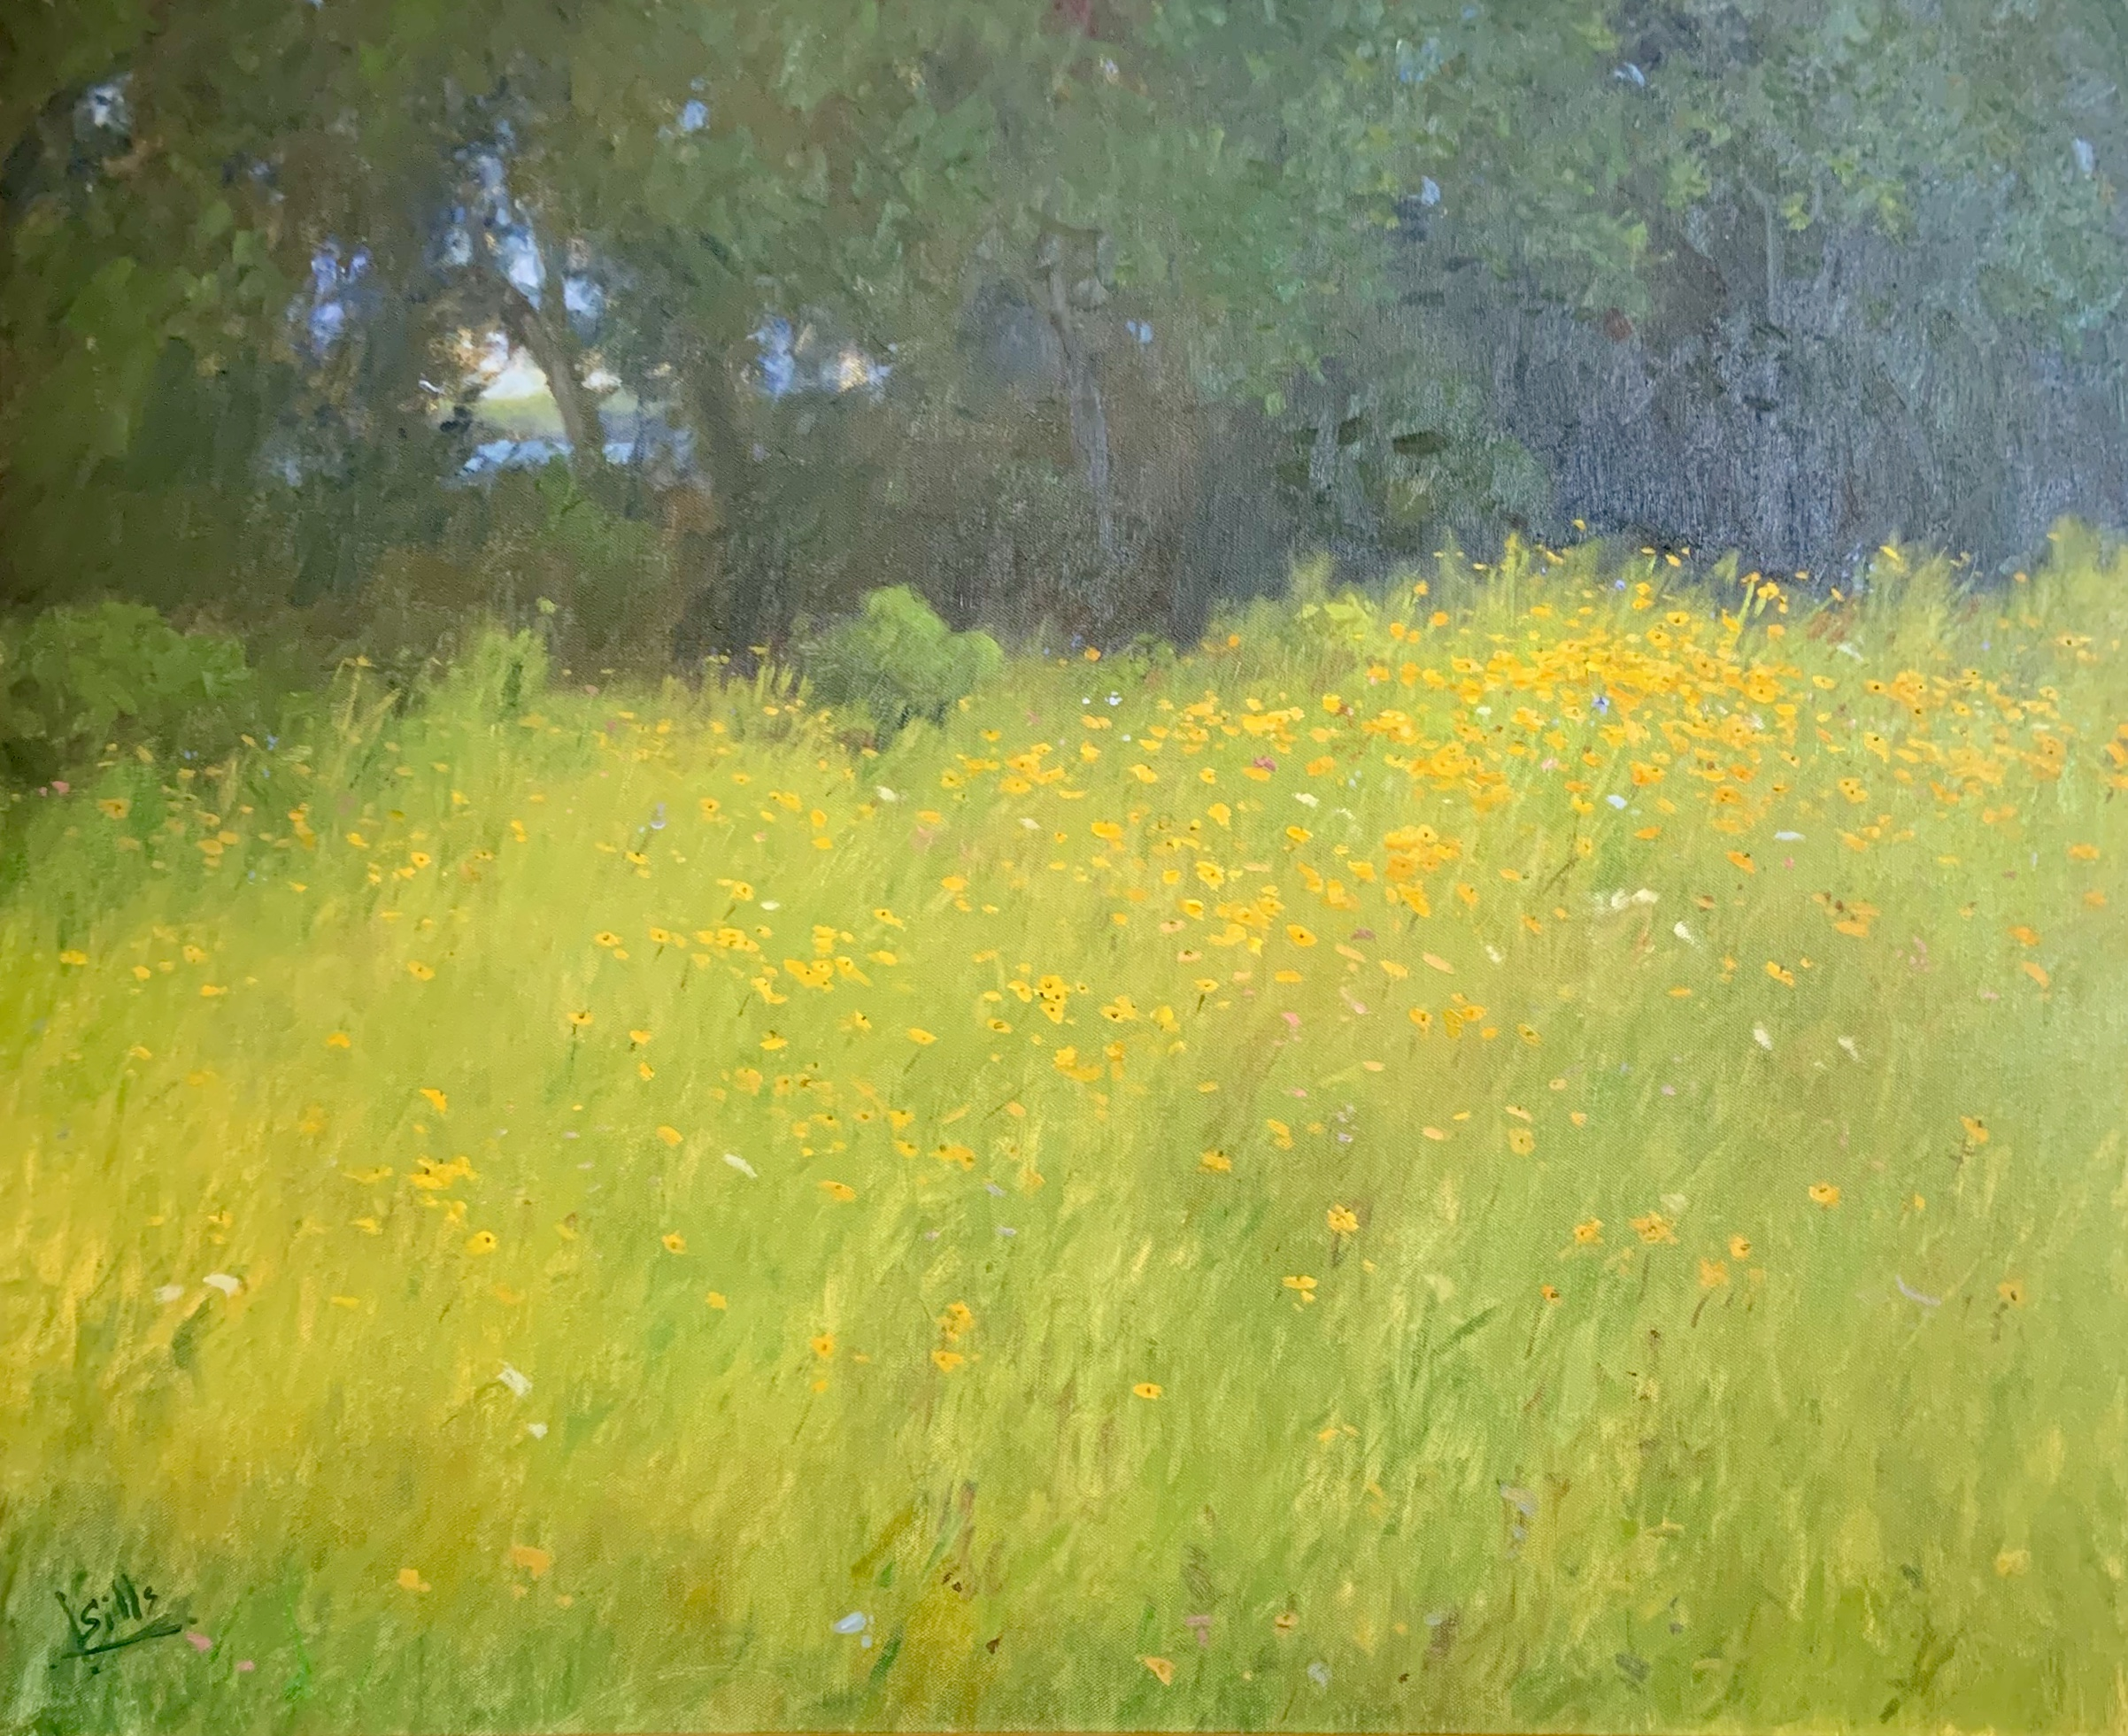 Field of Susies-Sills, oil 30x24 $7200